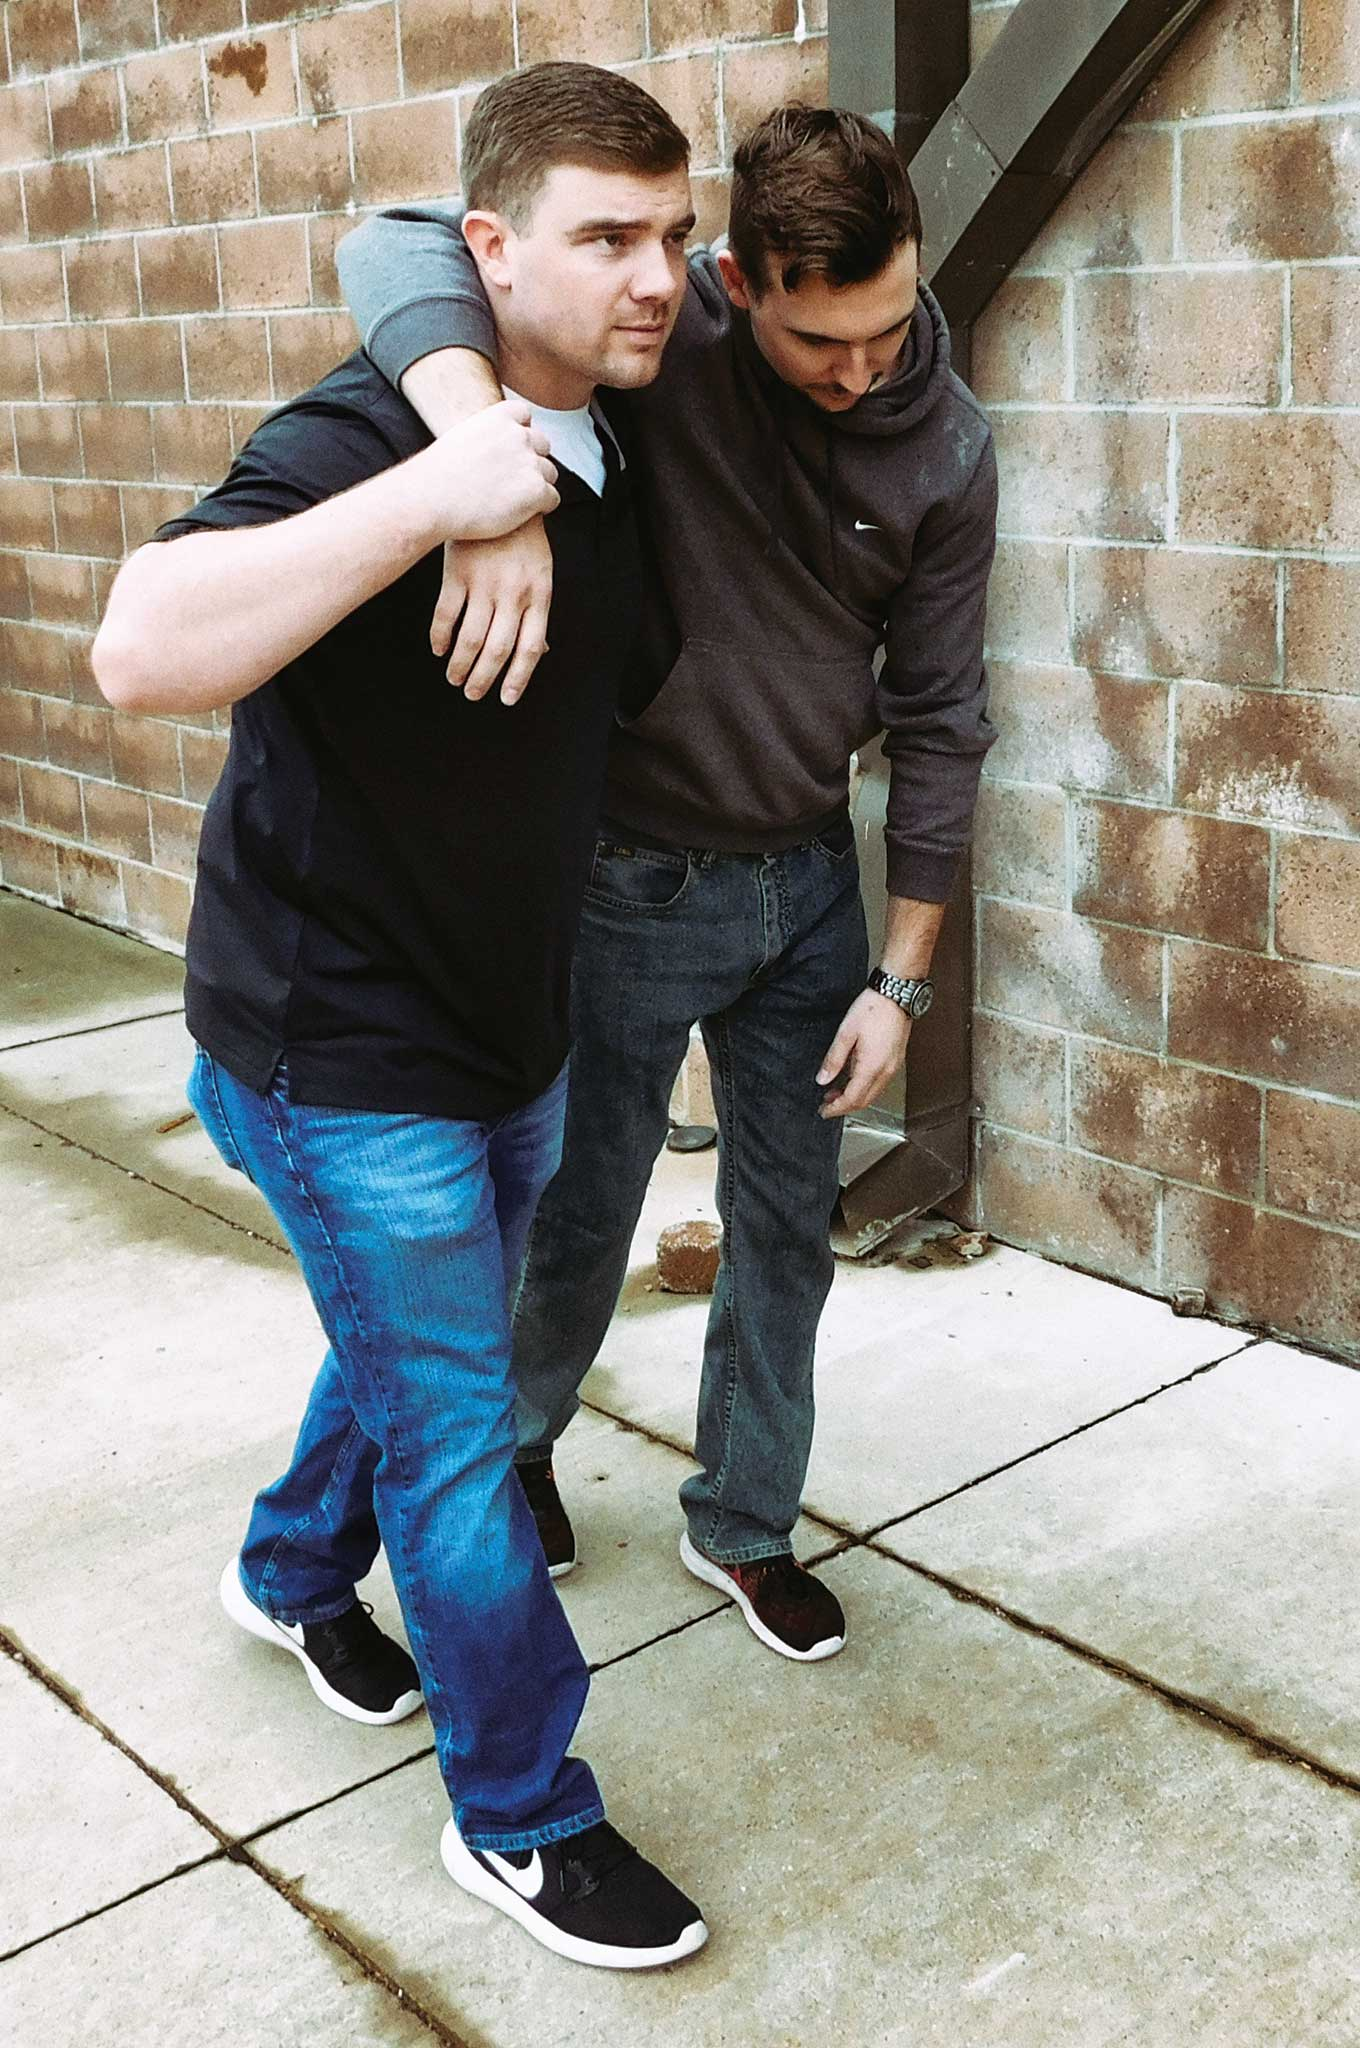 Although the one-person walk assist is one of the easiest methods of helping to carry an injured person, never attempt to move anyone you think may have neck or spinal injuries without proper training.